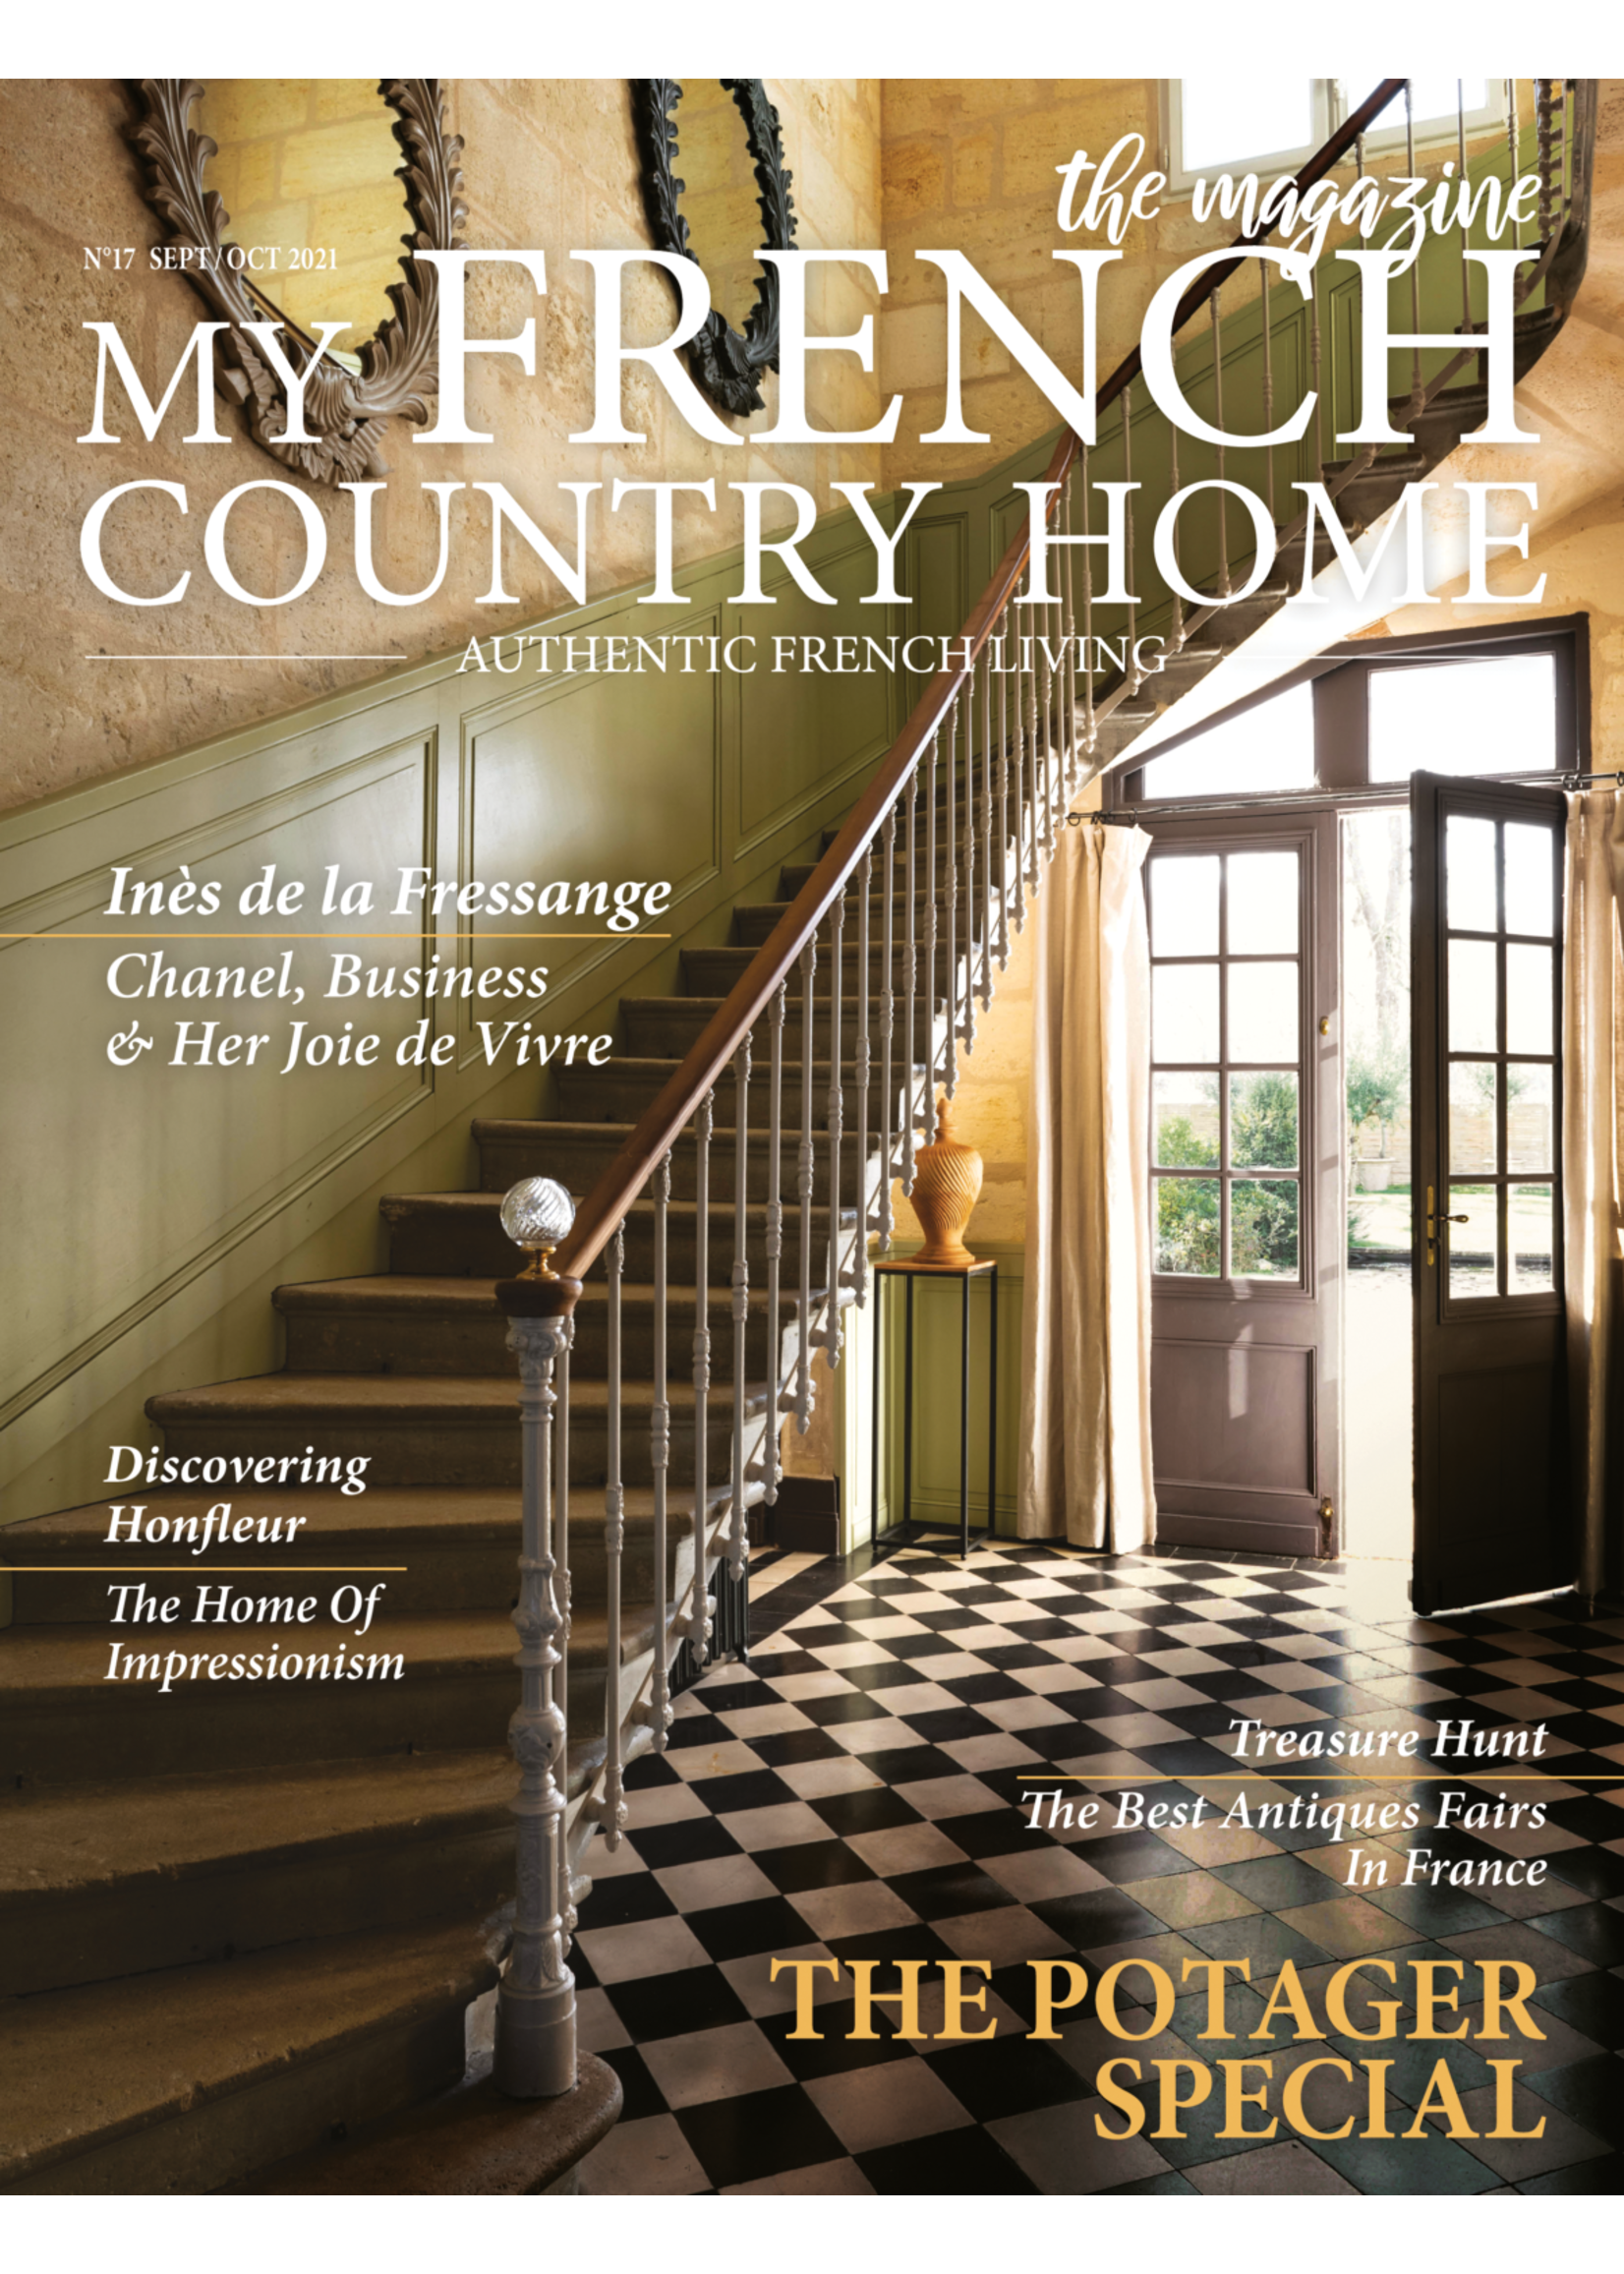 My French Country Home Magazine September/October 2021